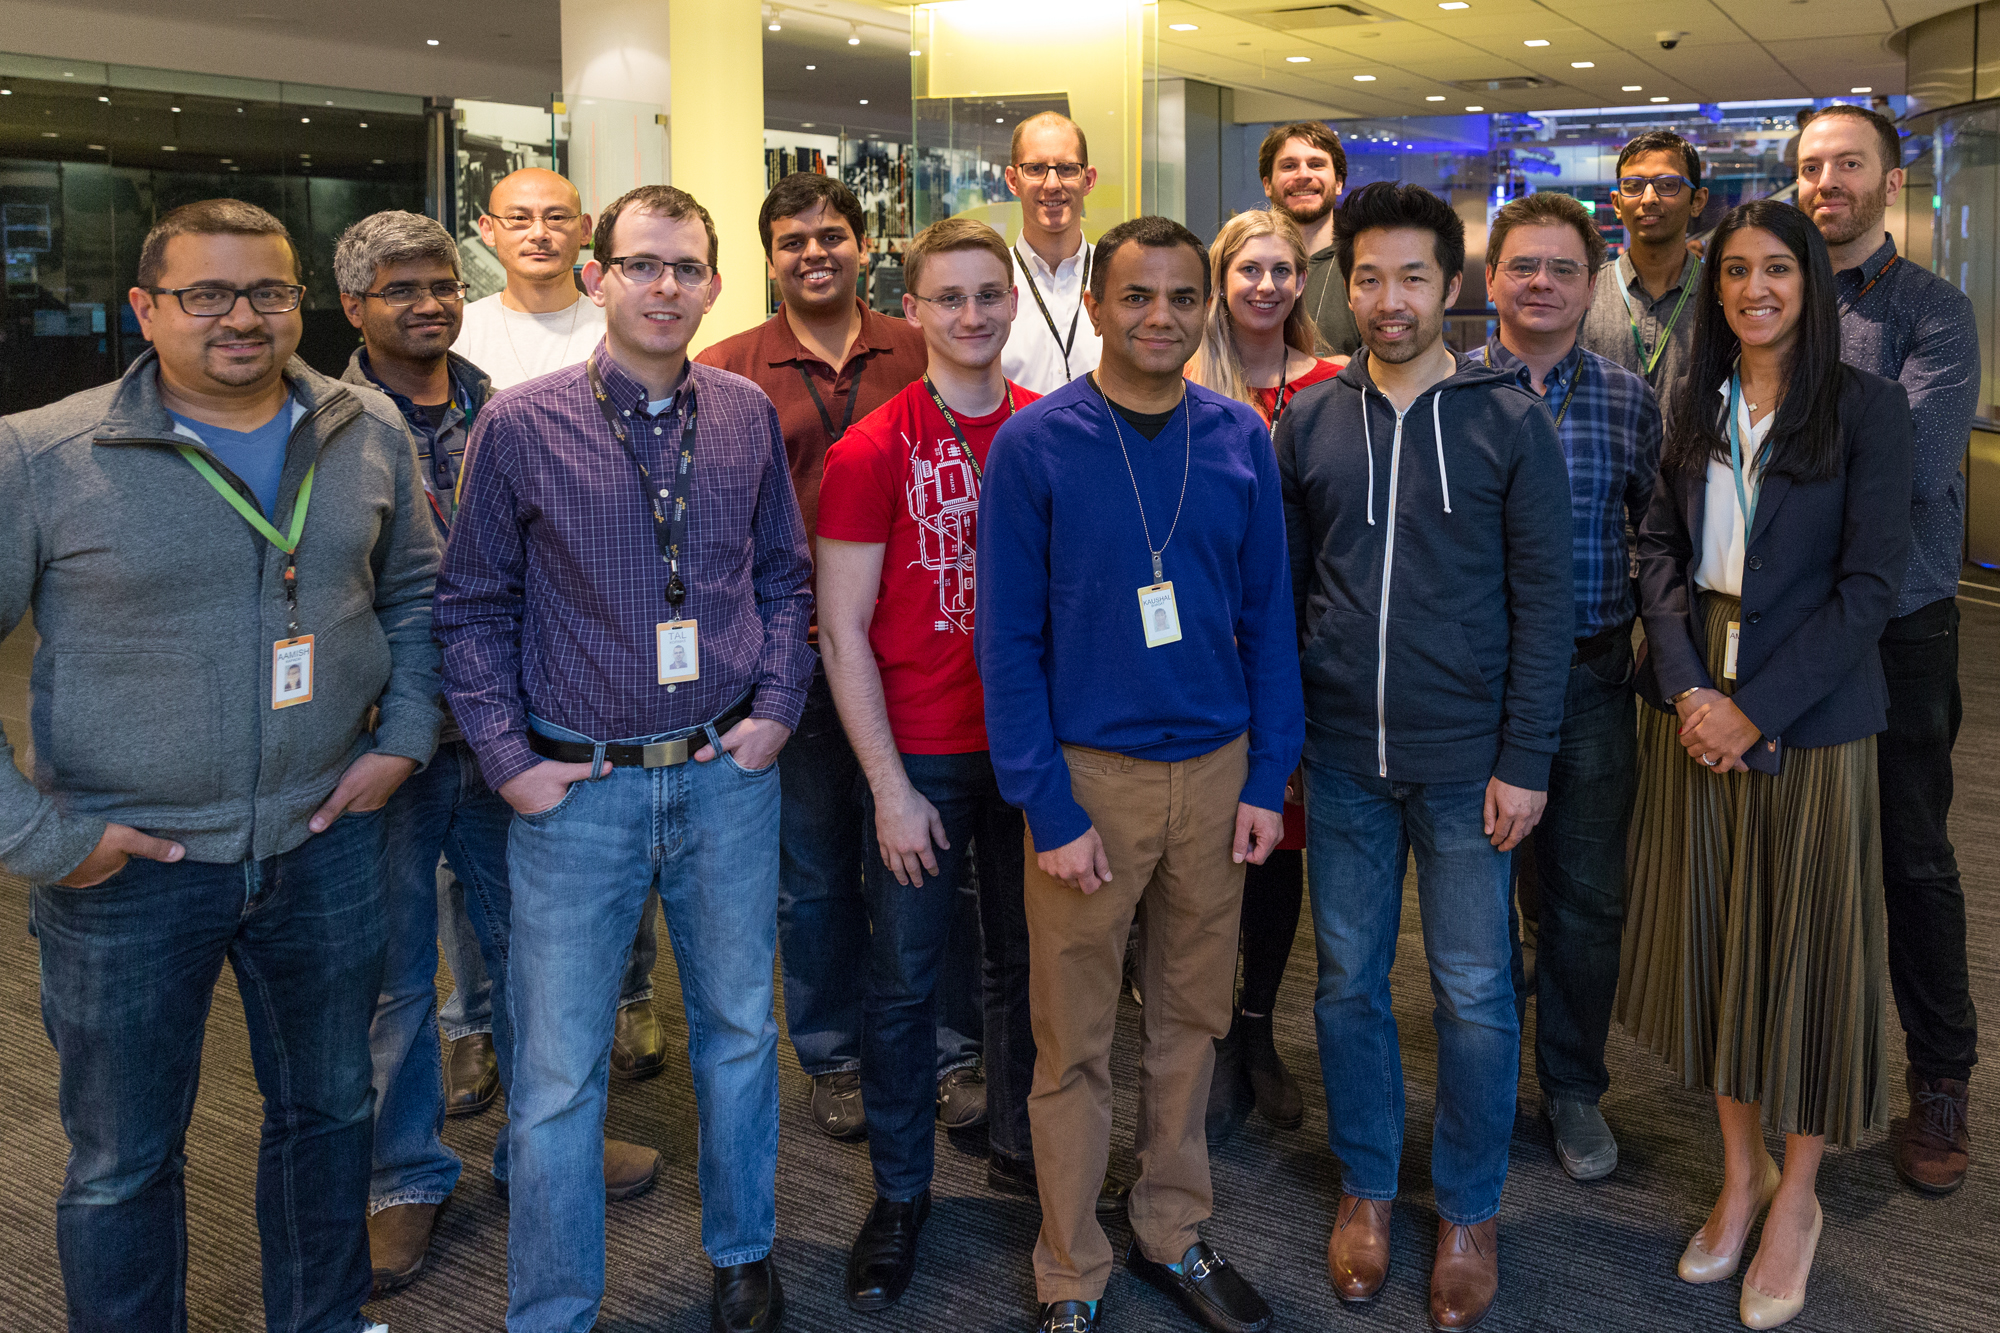 Bloomberg's Consumer Mobile Engineering team photographed at Bloomberg Global Headquarters in New York on December 13, 2016. Photographer: Lori Hoffman/Bloomberg.